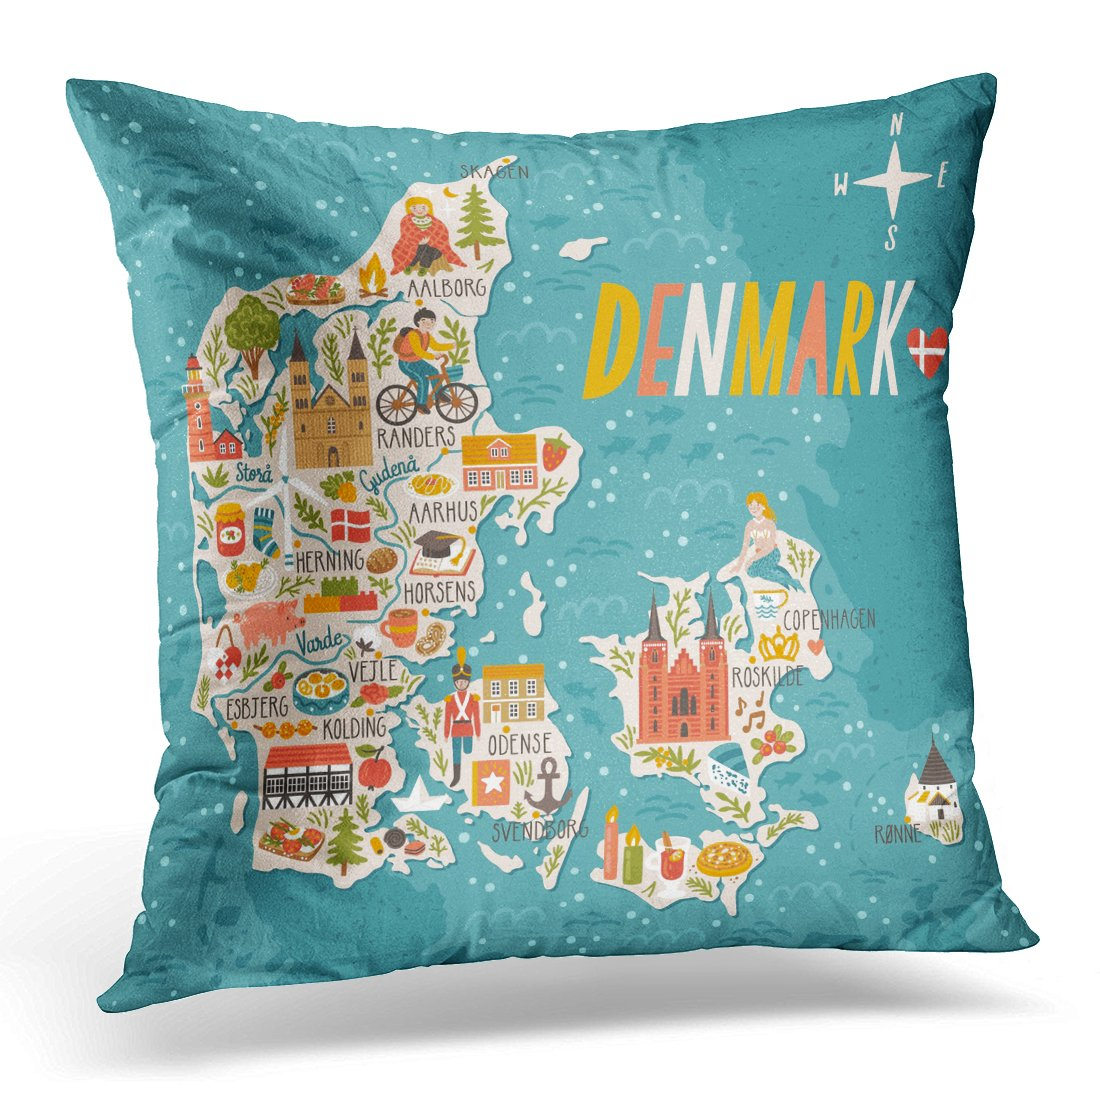 """Emvency Throw Pillow Cover City Map of Denmark Travel with Danish Landmarks People Food and Animals Copenhagen Decorative Pillow Case Home Decor Square 18"""" x 18"""" Pillowcase"""